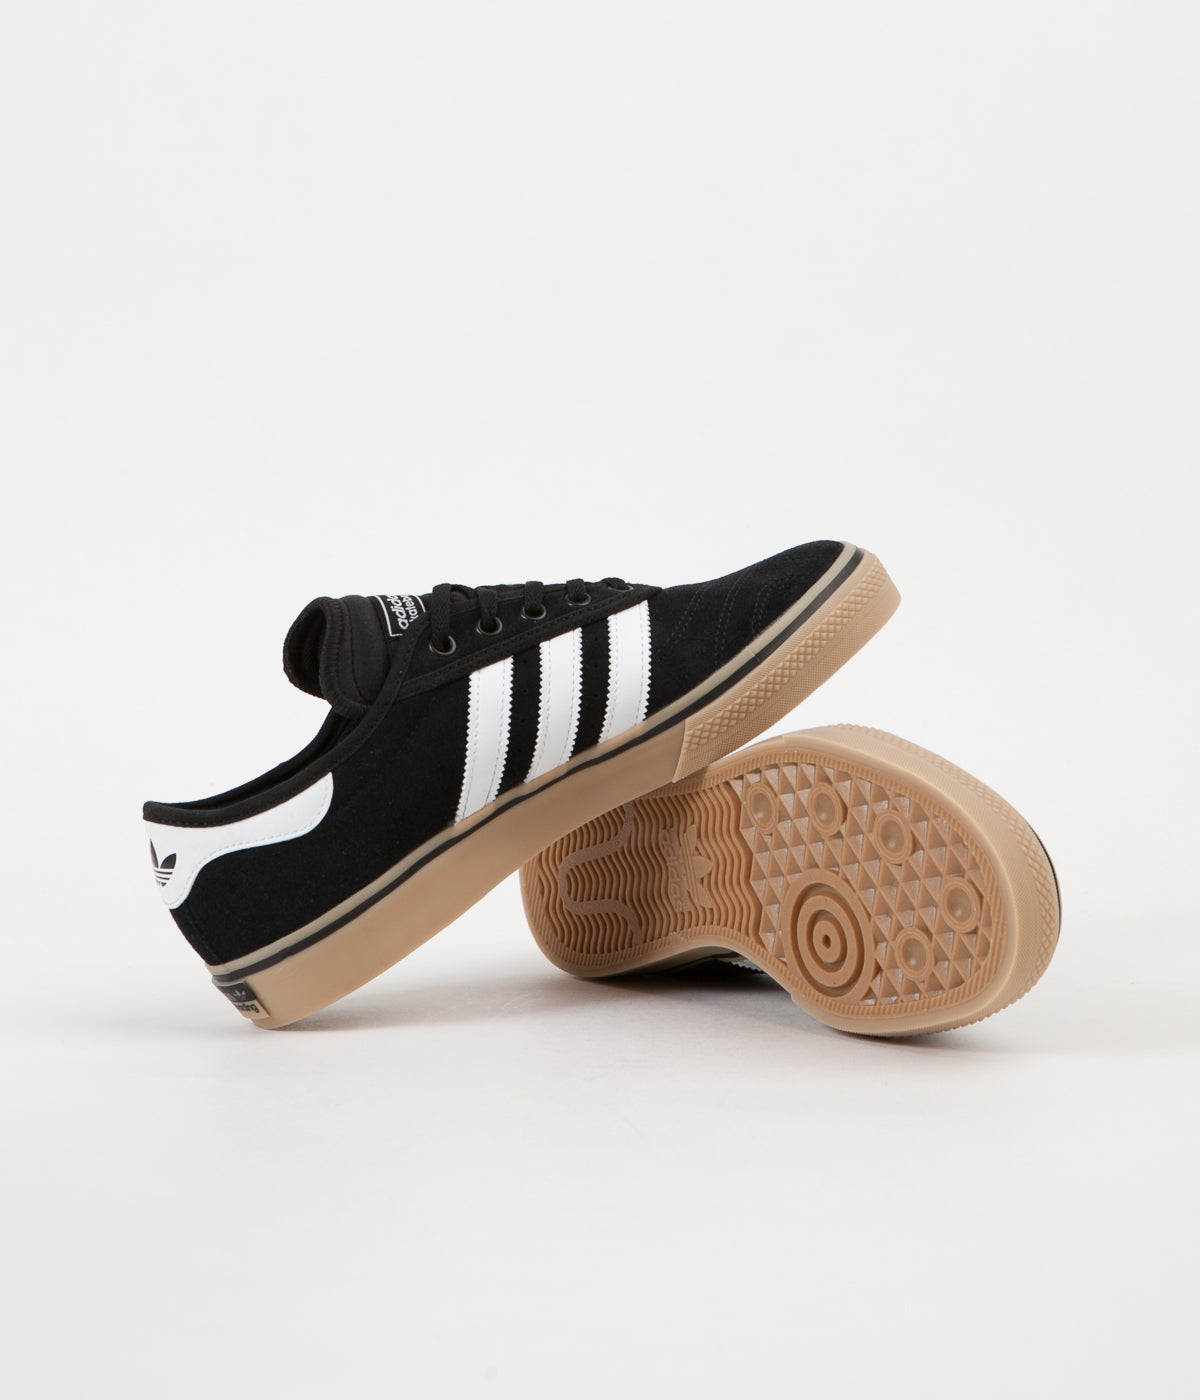 separation shoes 8802f f0eaf ... Adidas Adi-Ease Premiere Shoes - Core Black  White  Gum ...